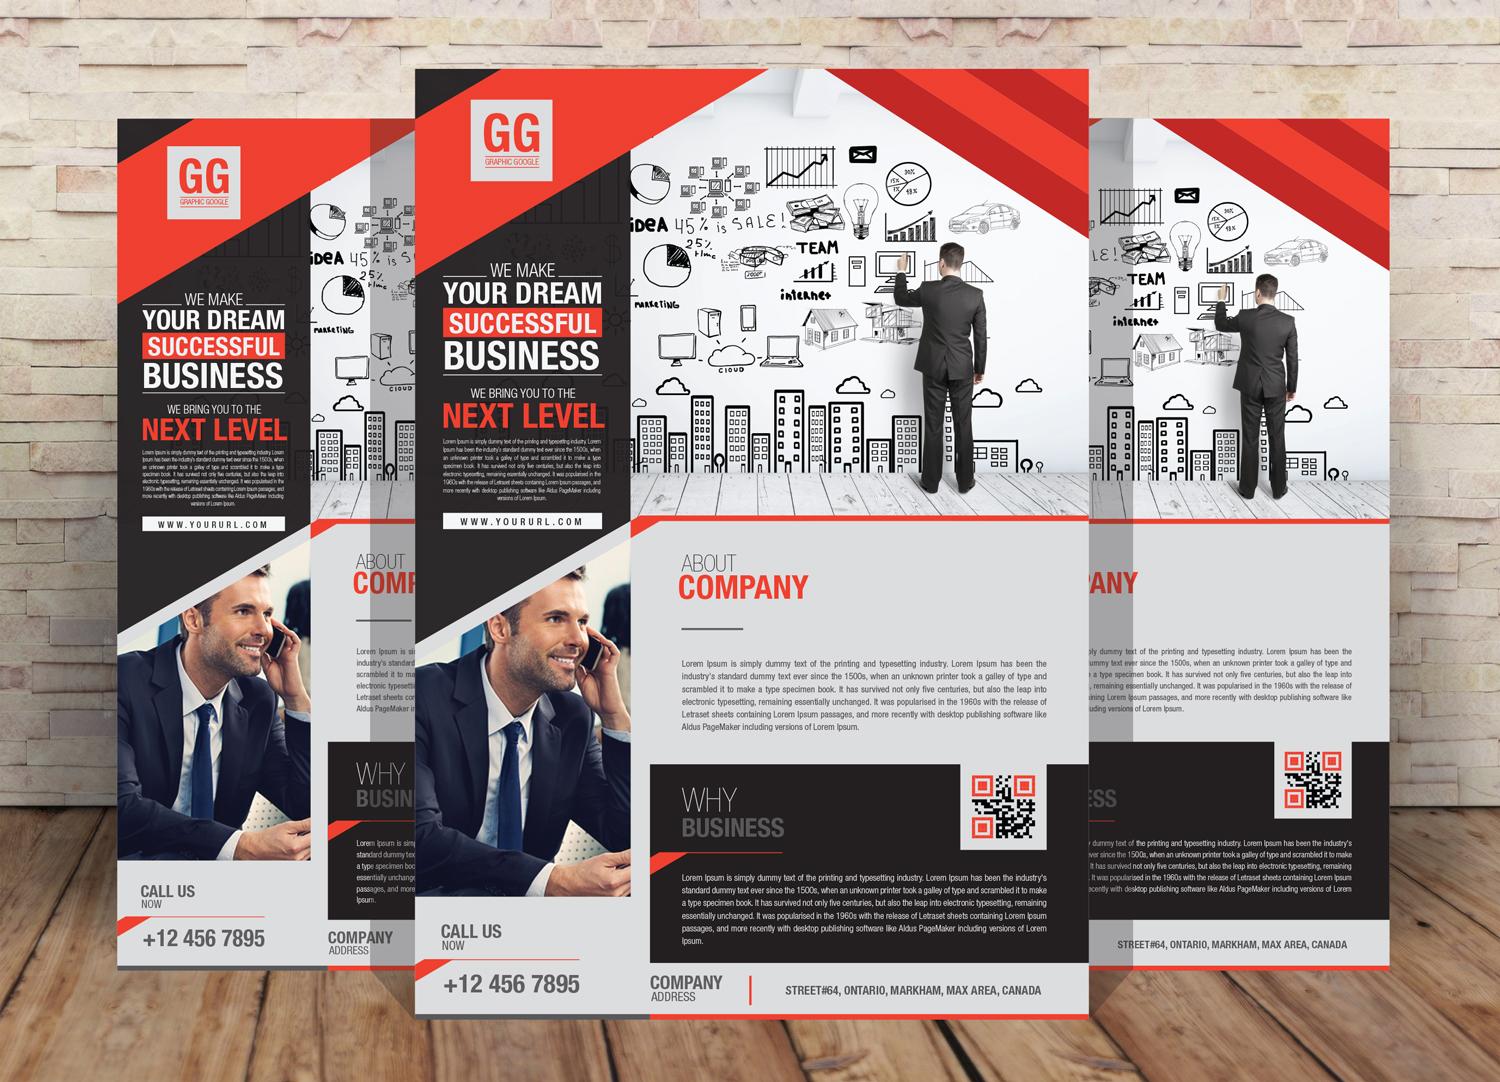 Free business flyer design template for your corporate business in 2017 free business flyer design template friedricerecipe Choice Image